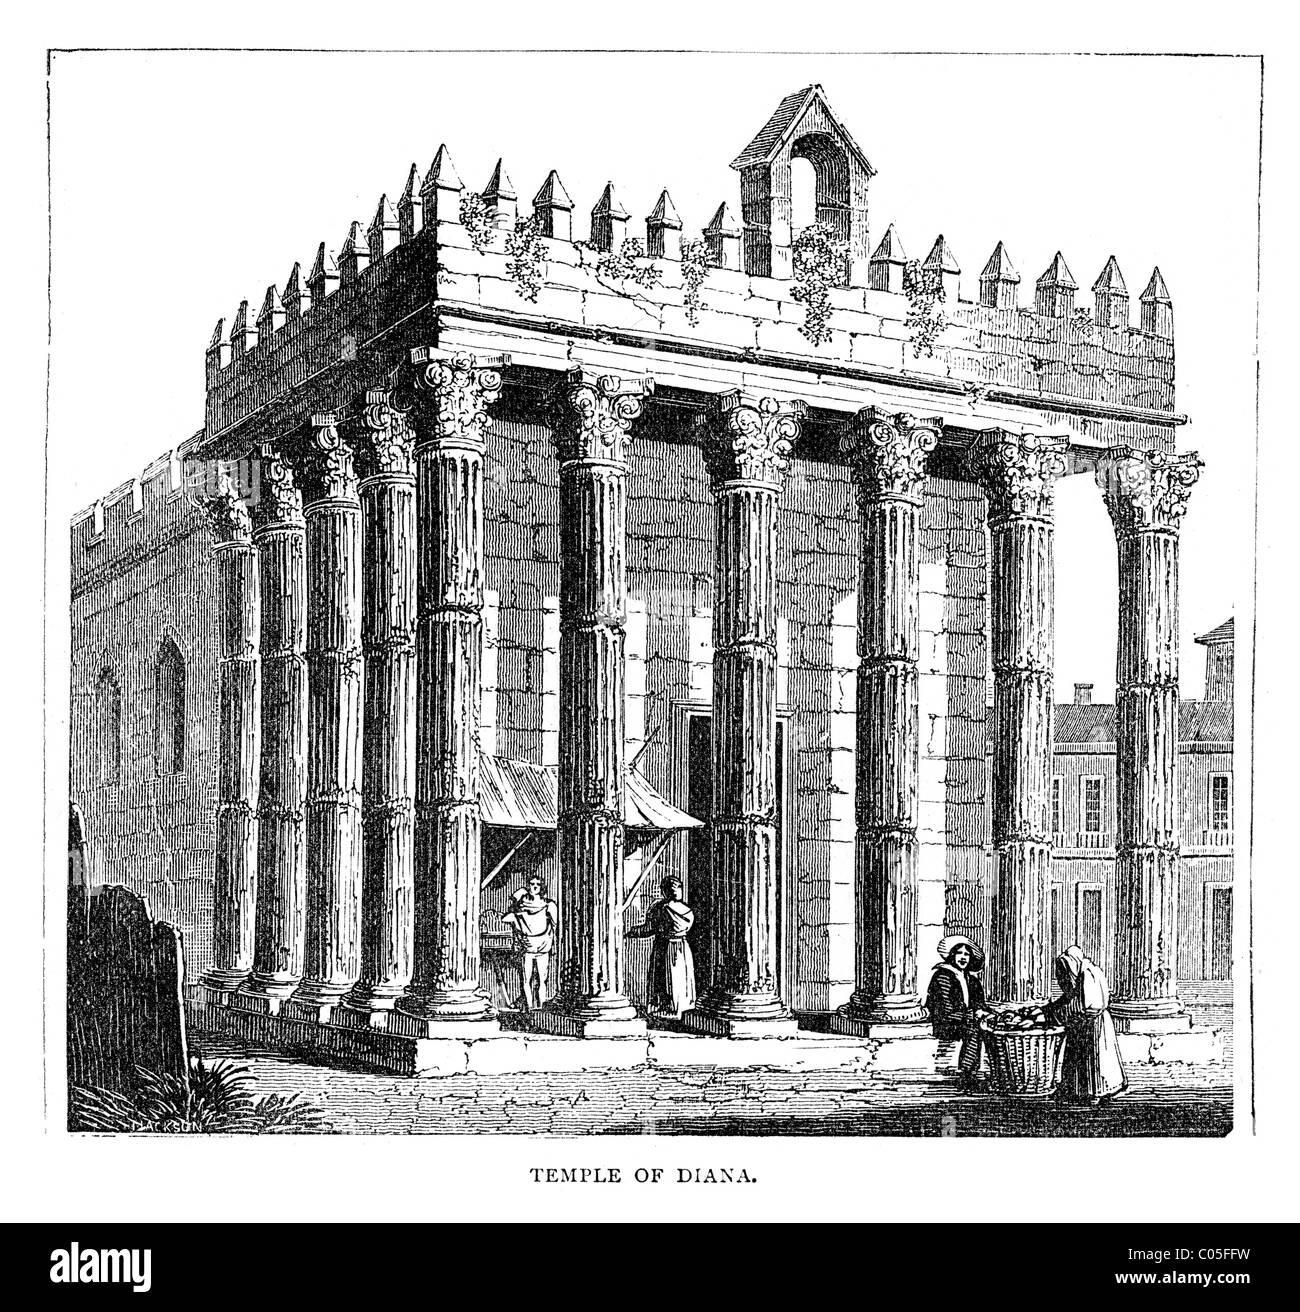 Vintage engraving of an Ancient Temple of Diana the goddess of the hunt,  associated with wild animals and woodland - Stock Image